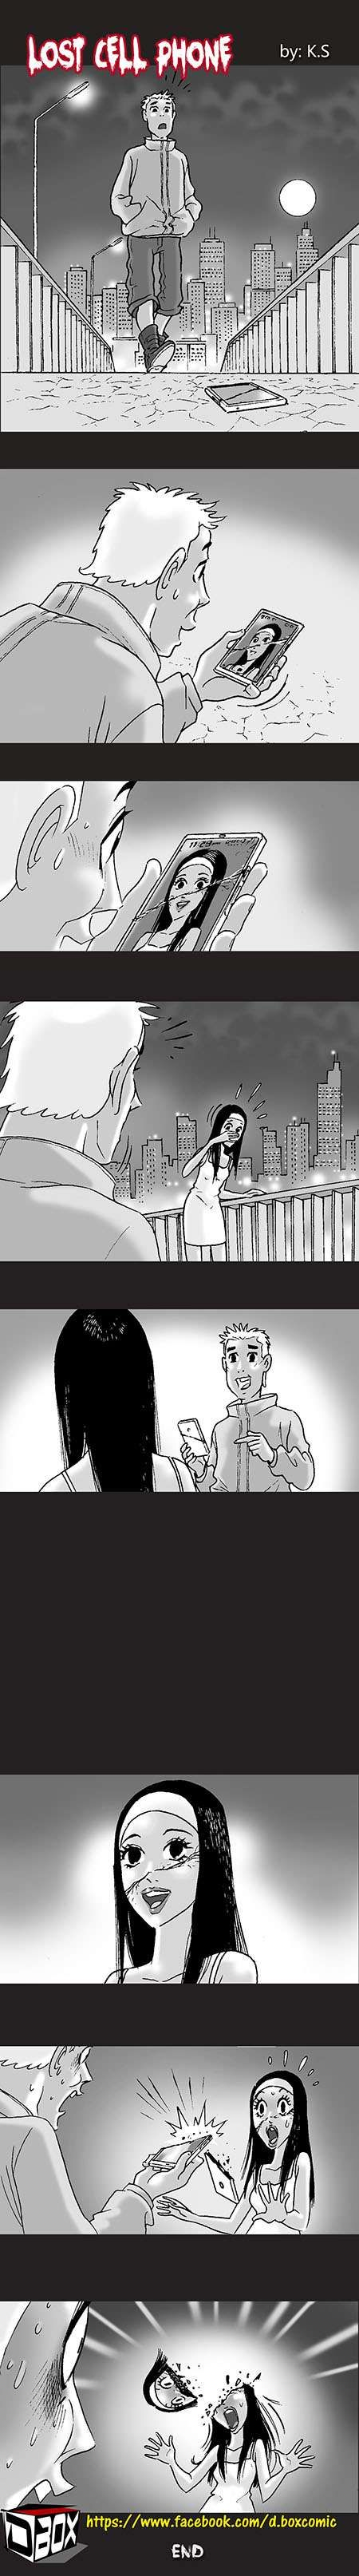 Silent Horror :: Lost Cell Phone | Tapastic Comics - image 1